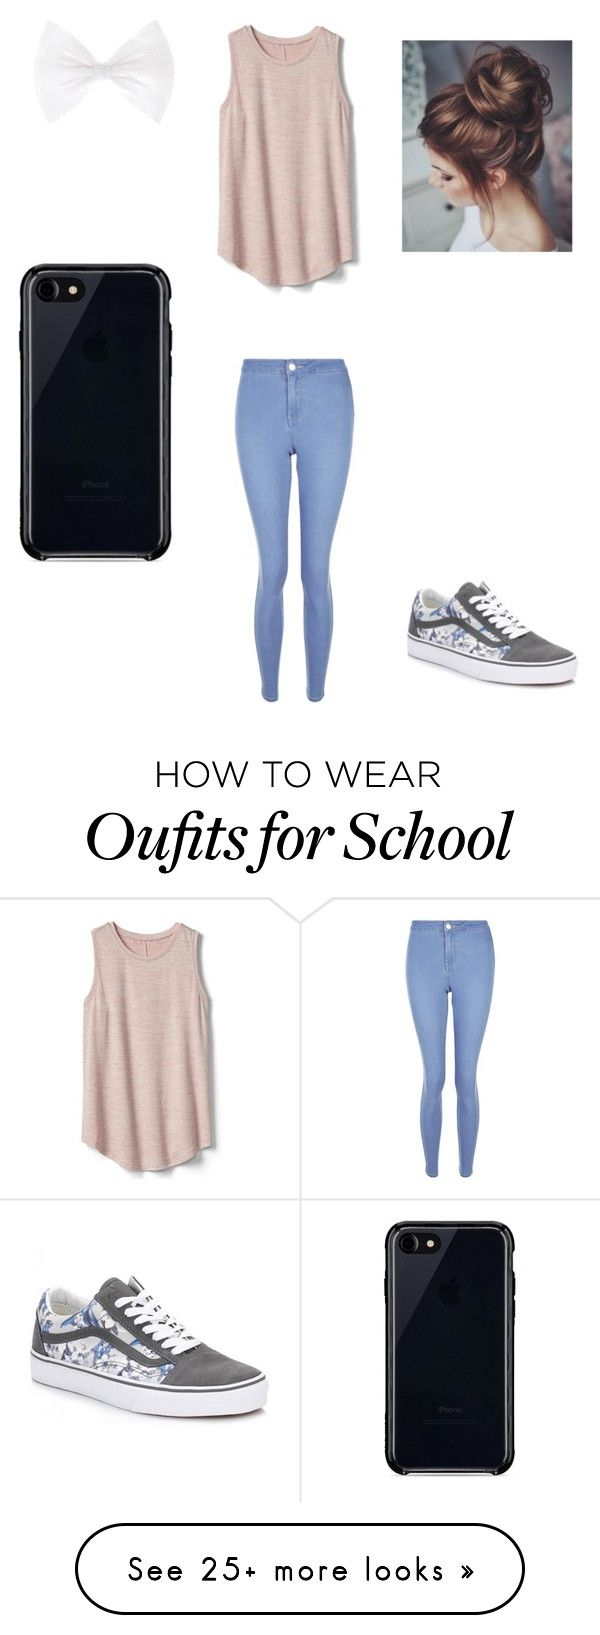 """Simple school day"" by kiddoshooter on Polyvore featuring New Look, Gap, Vans and Belkin"